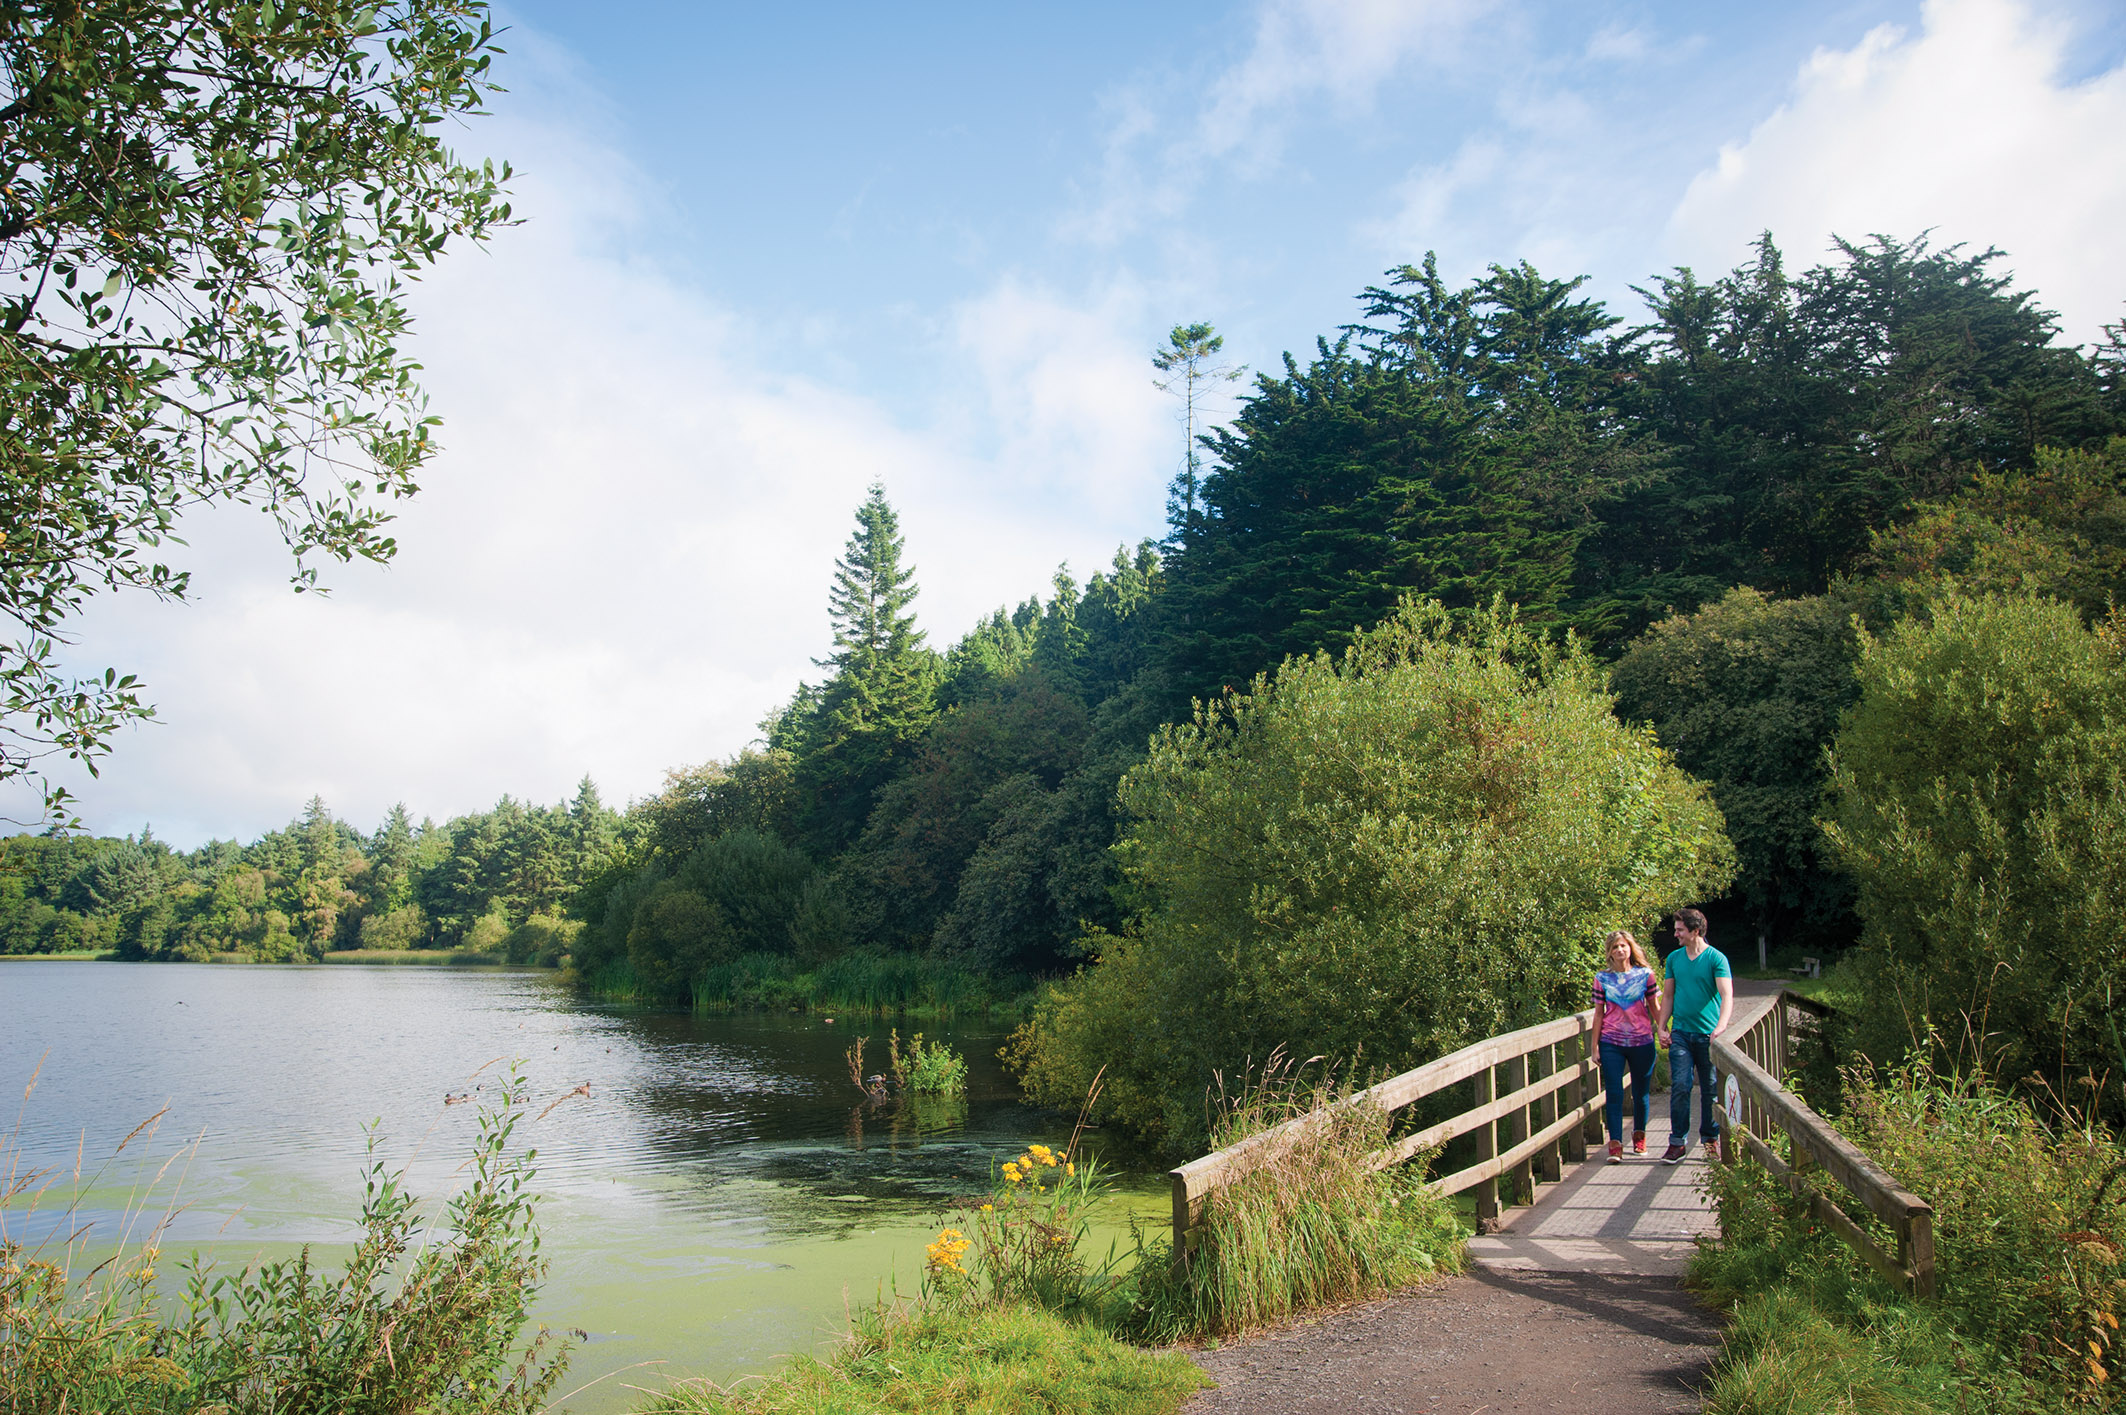 Man and woman walking on wooden bridge beside lake